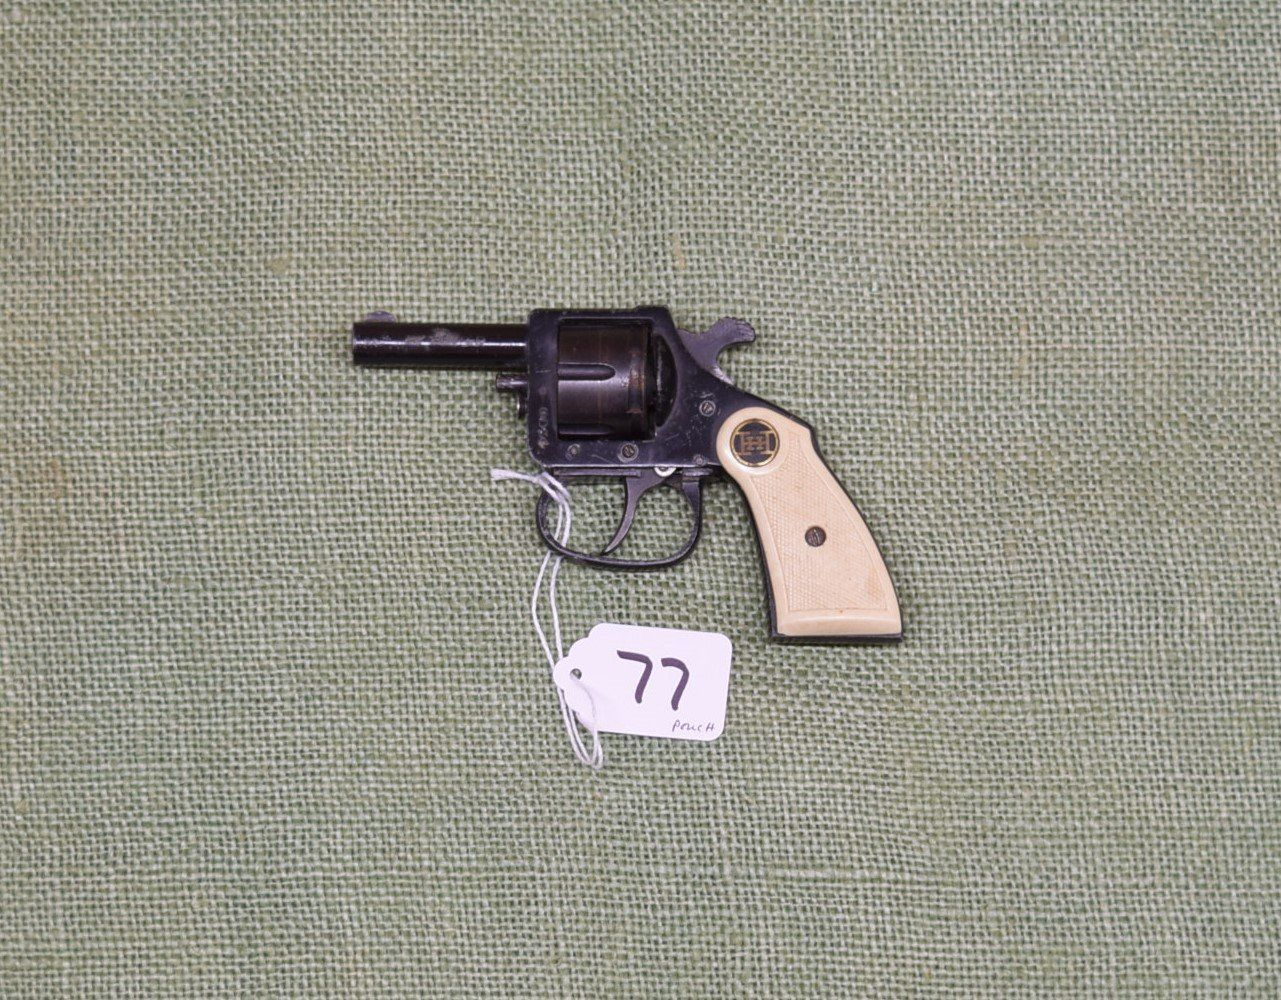 Hy hunter revolver mighty midget